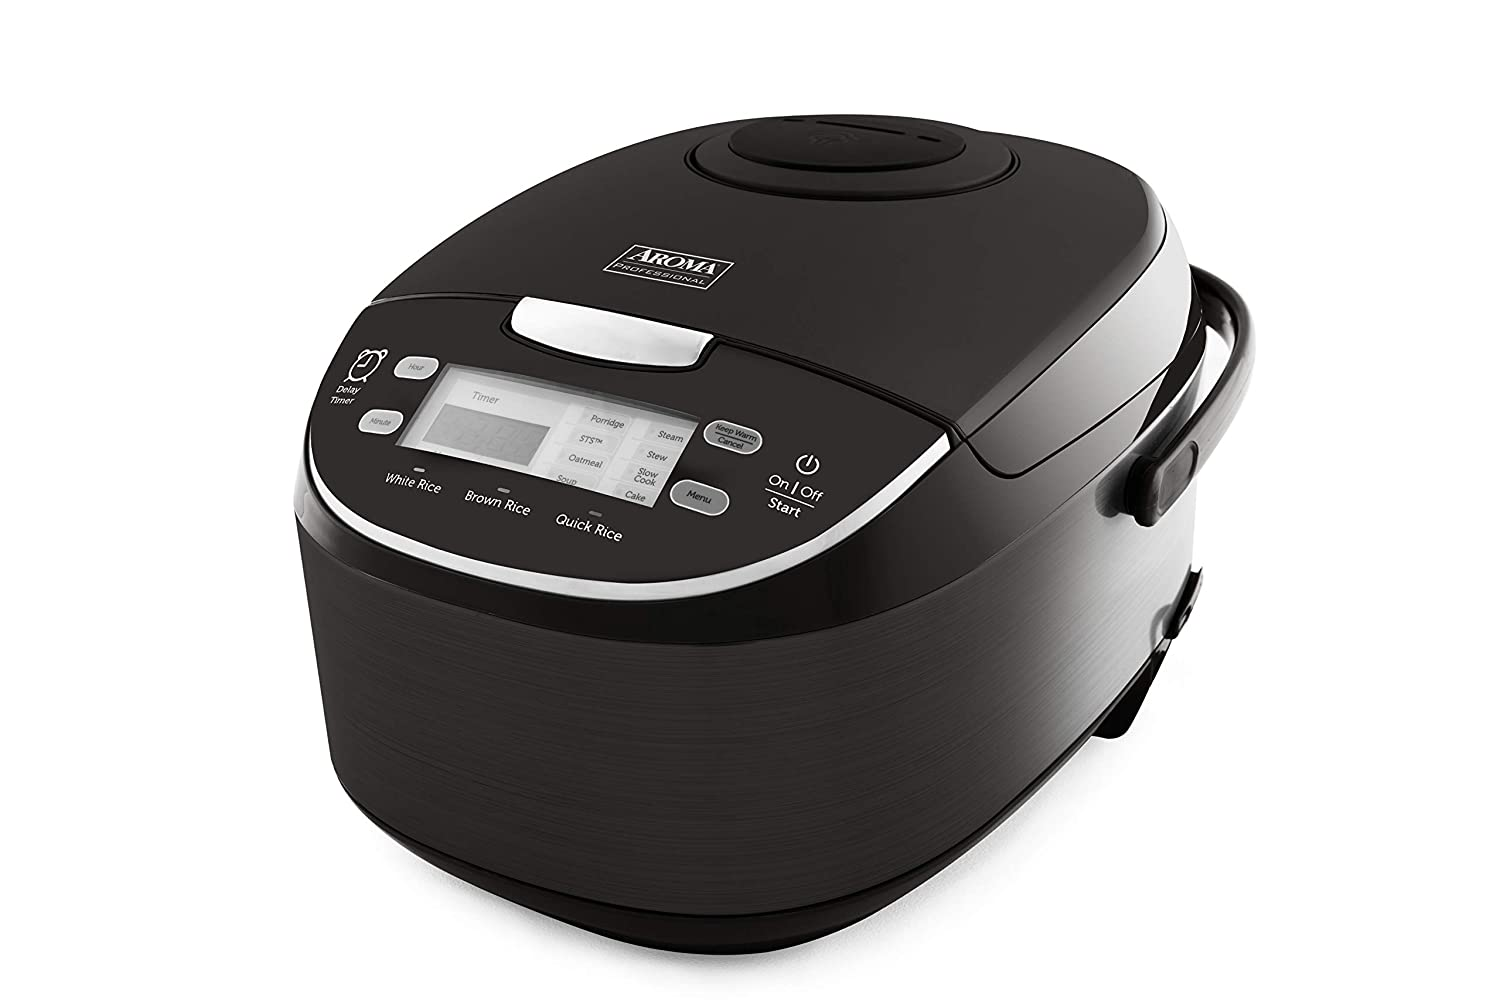 Aroma Housewares ARC-6106AB Japanese Style, Multi, Rice Warmer, Steamer, Saute-Then-Simmer, Cake Maker, Slow Cooker, 3Qt /12 cup cooked, Black